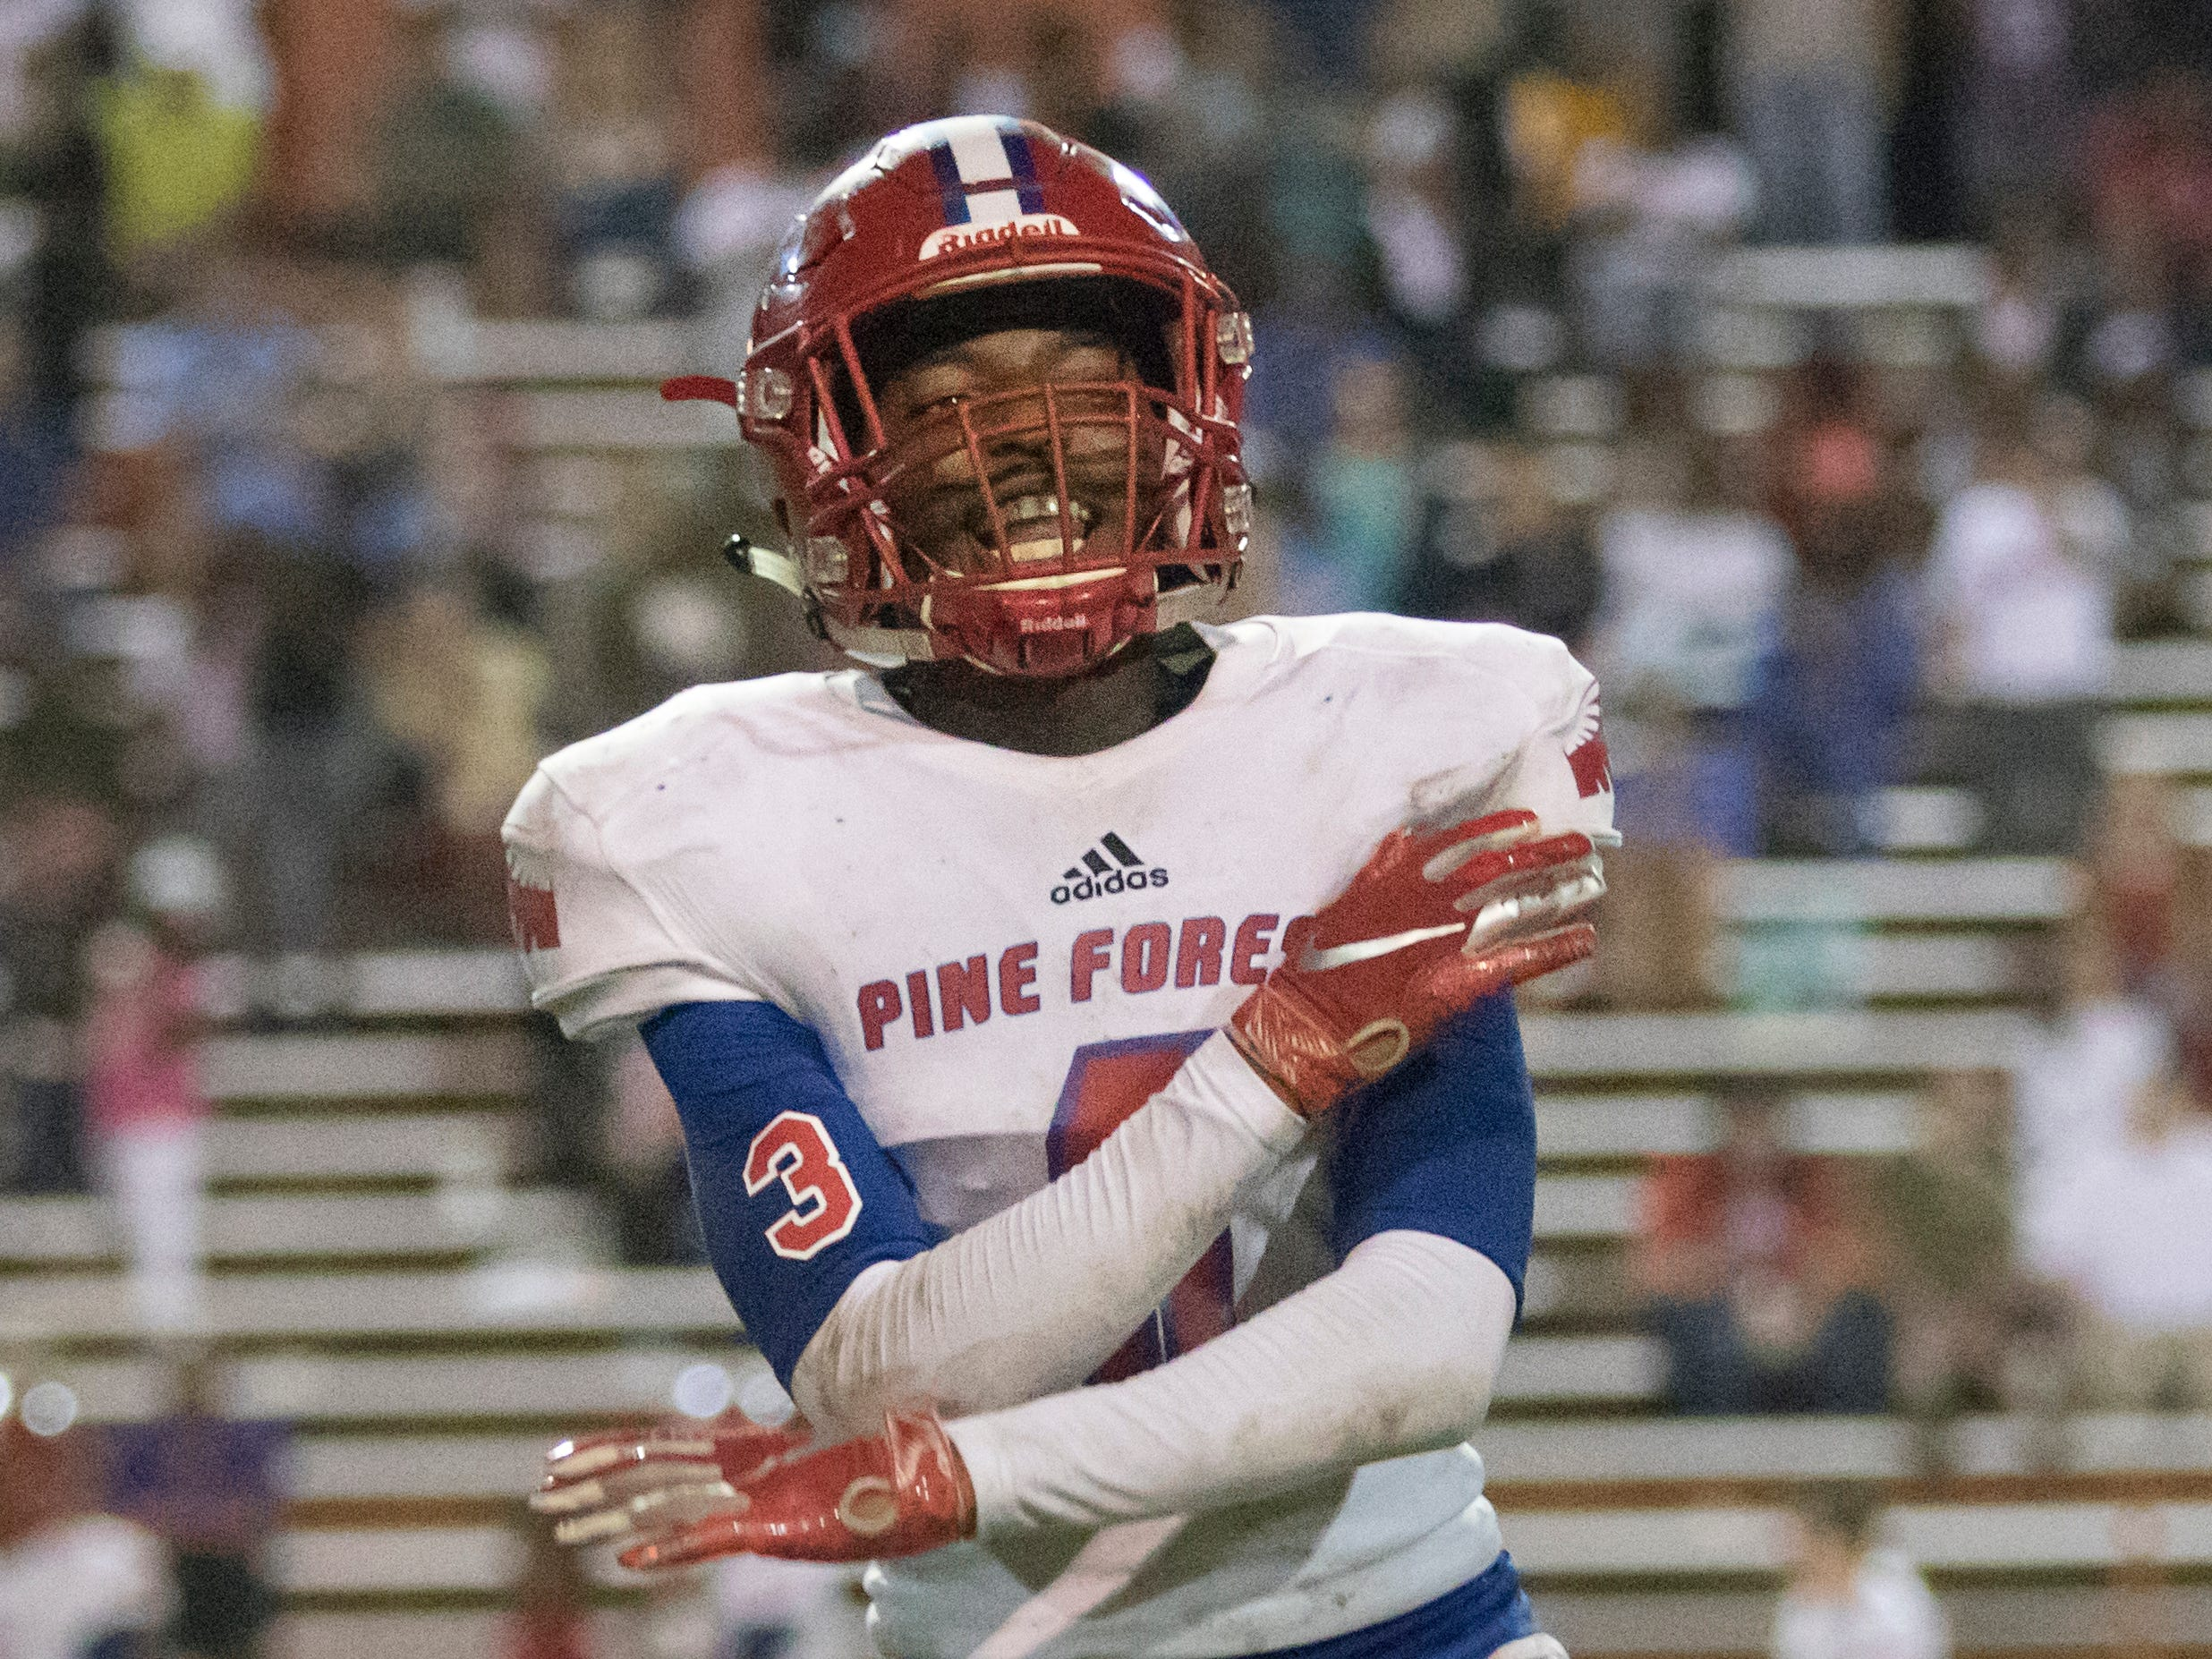 Vonquarius Brown (6) taunts the Gators sideline after the Eagles hold on 4th down and get the ball during the Pine Forest vs Escambia football game at Escambia High School in Pensacola on Friday, September 28, 2018.